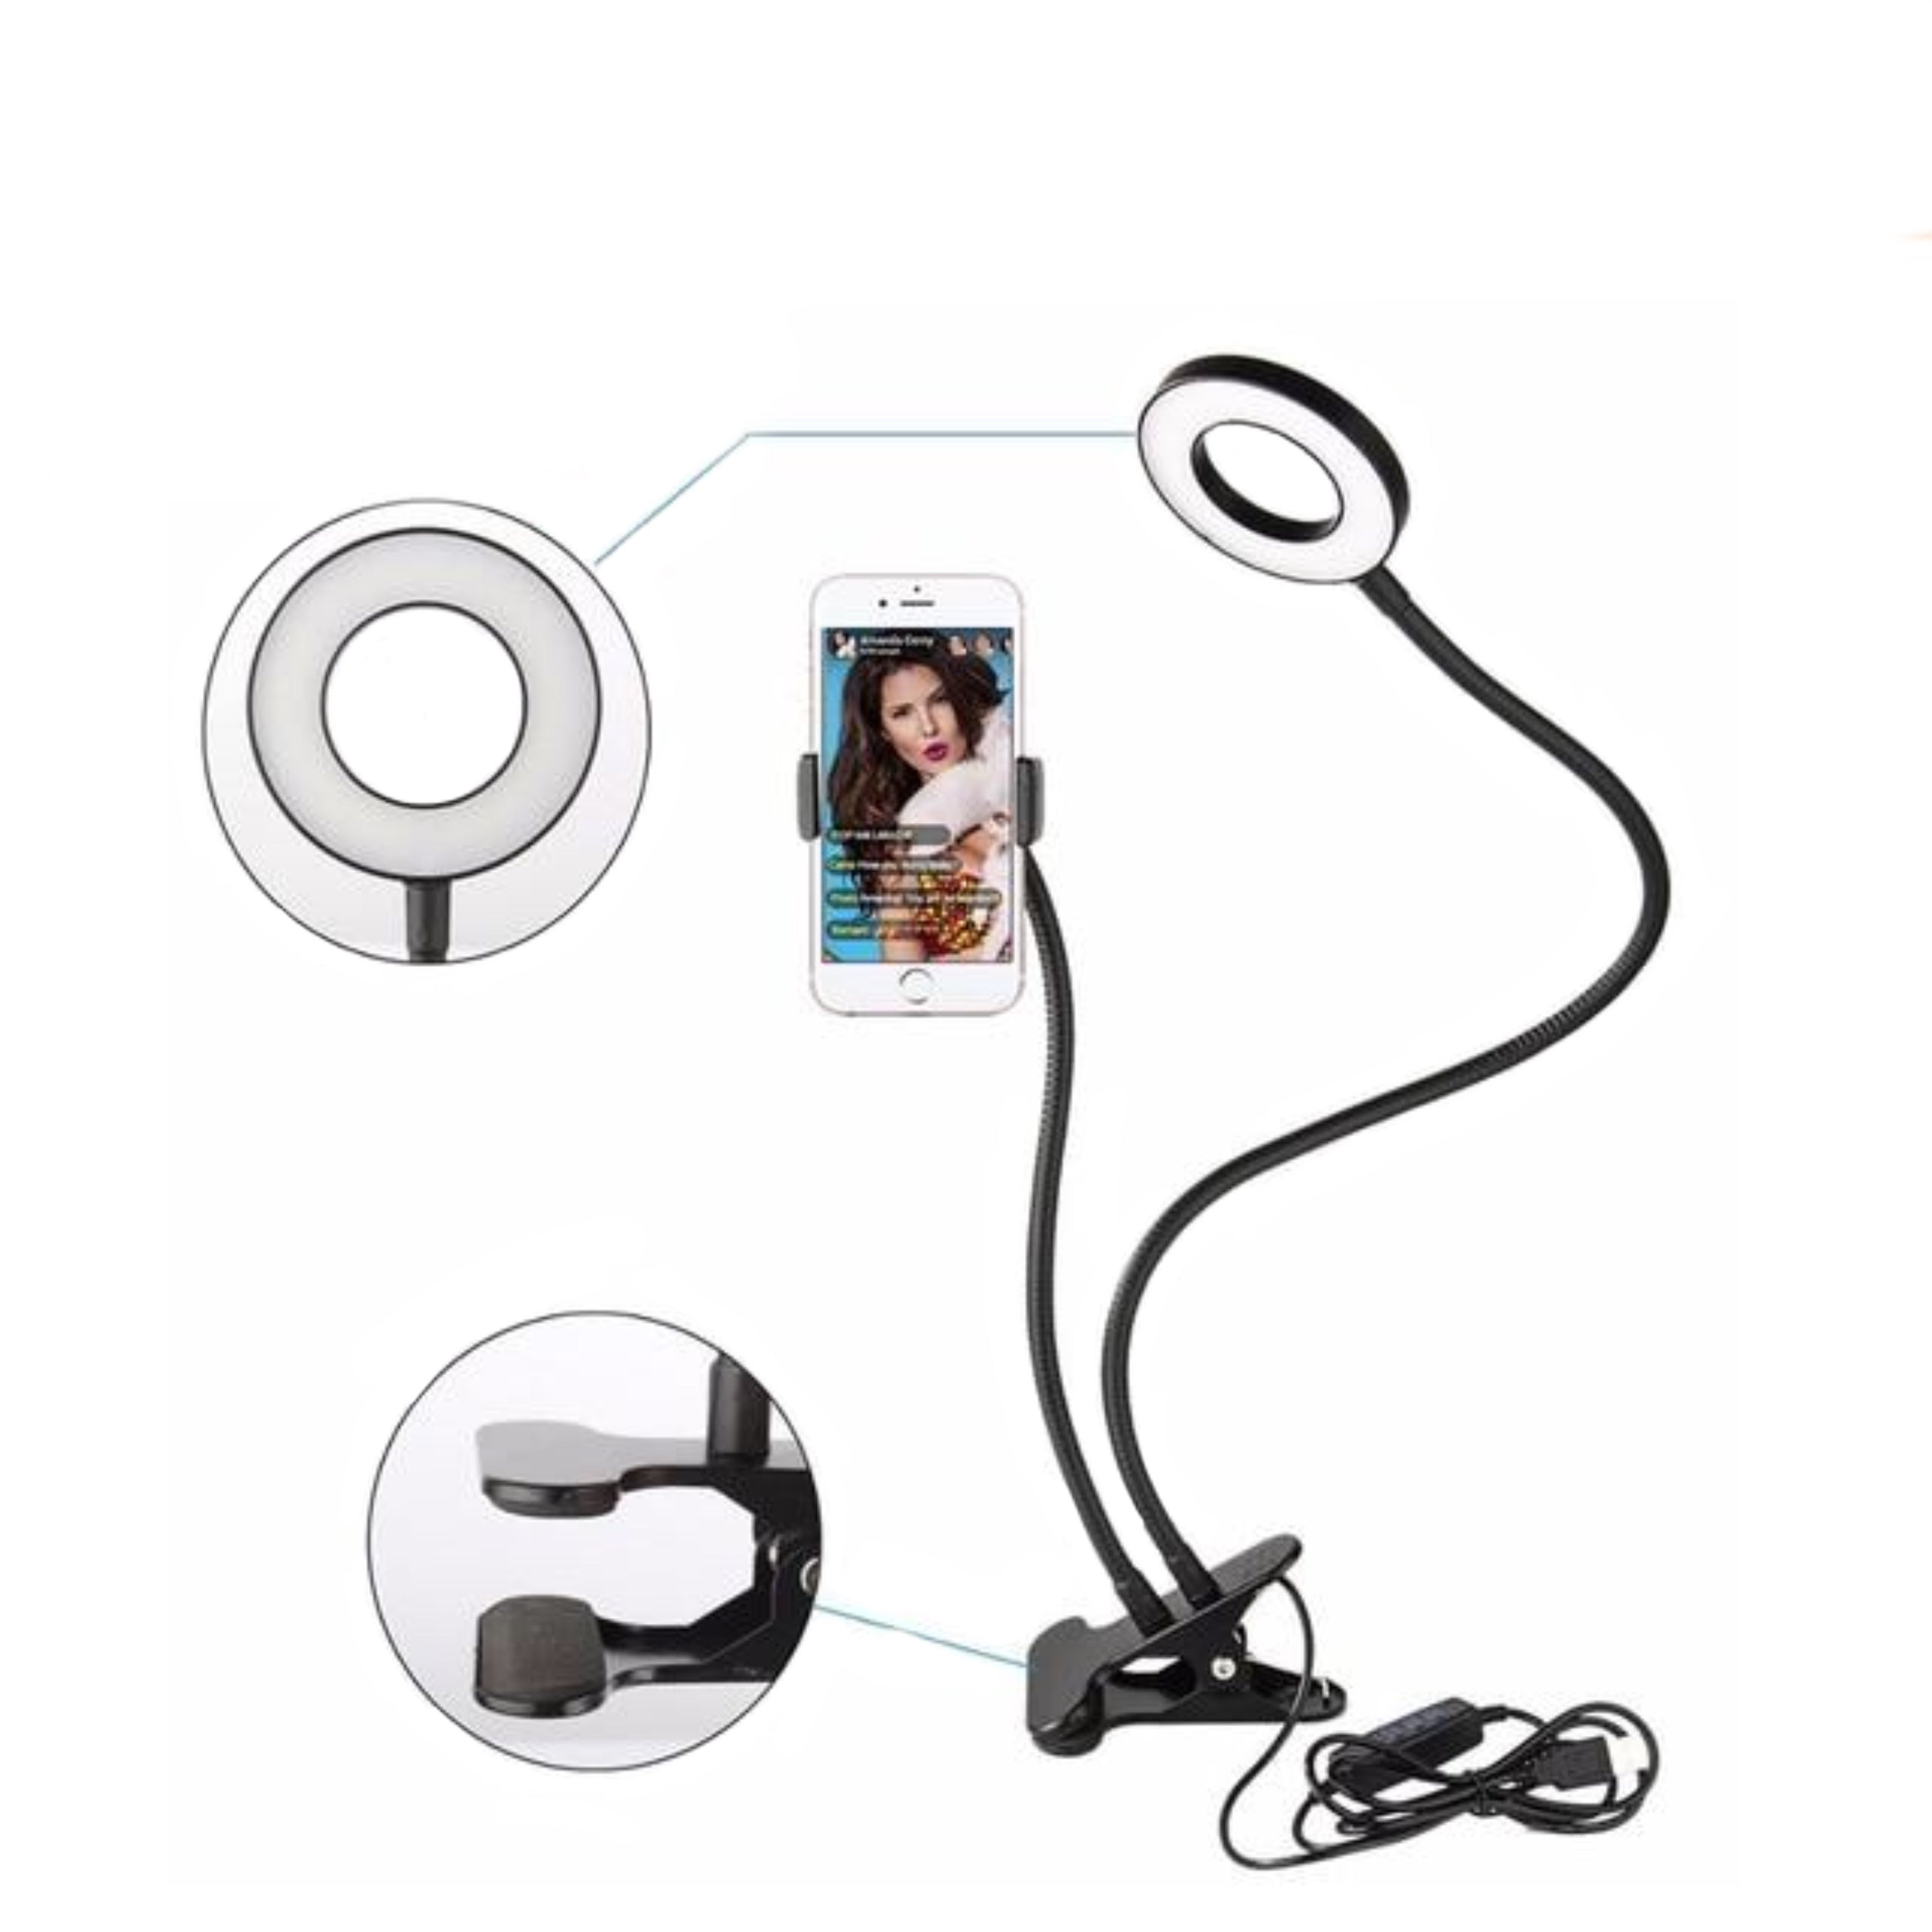 LED Selfie Ring Light for Smartphones (with clip)